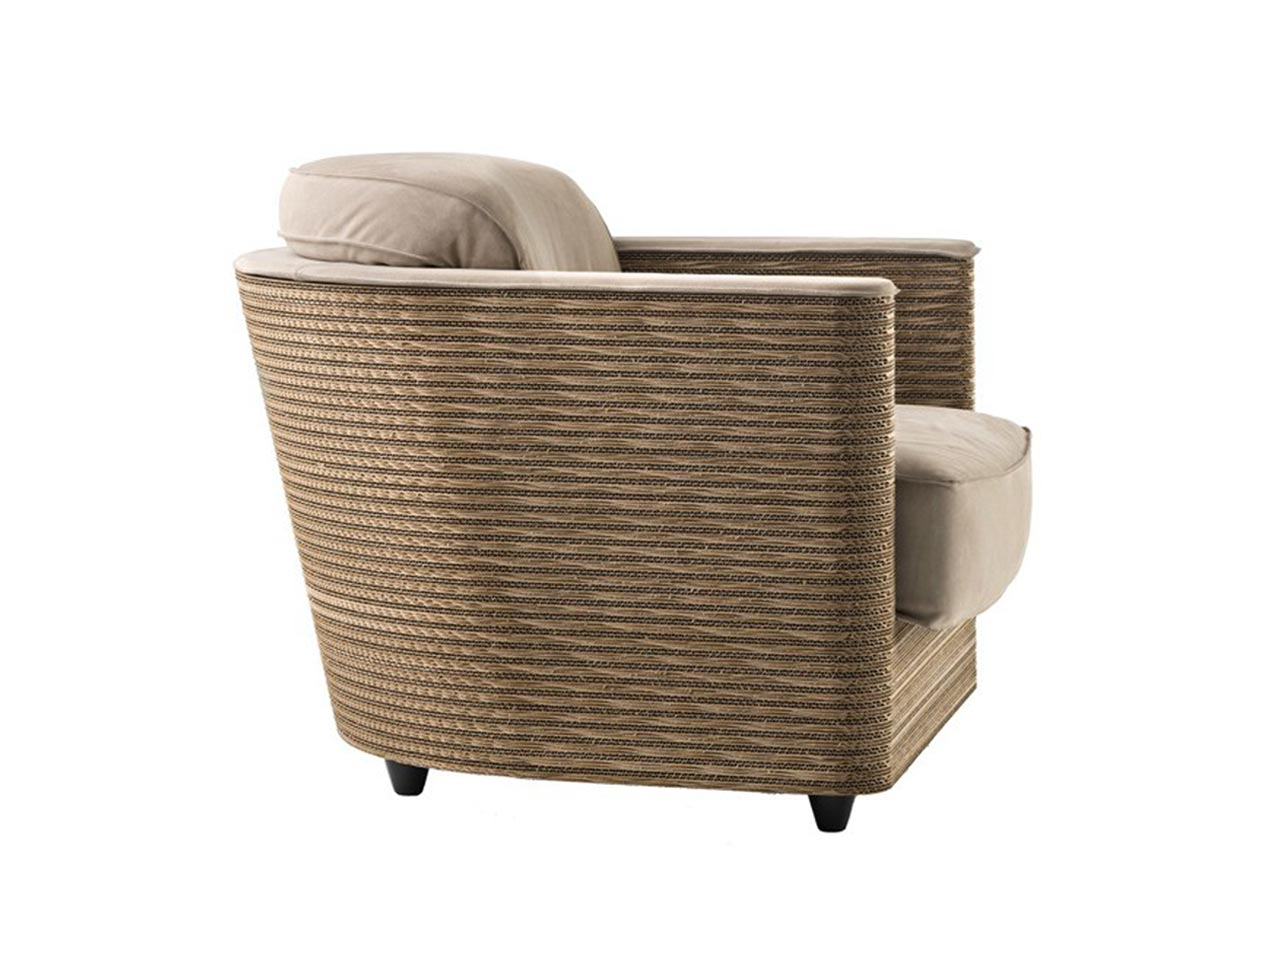 Staygreen, Wendy armchair